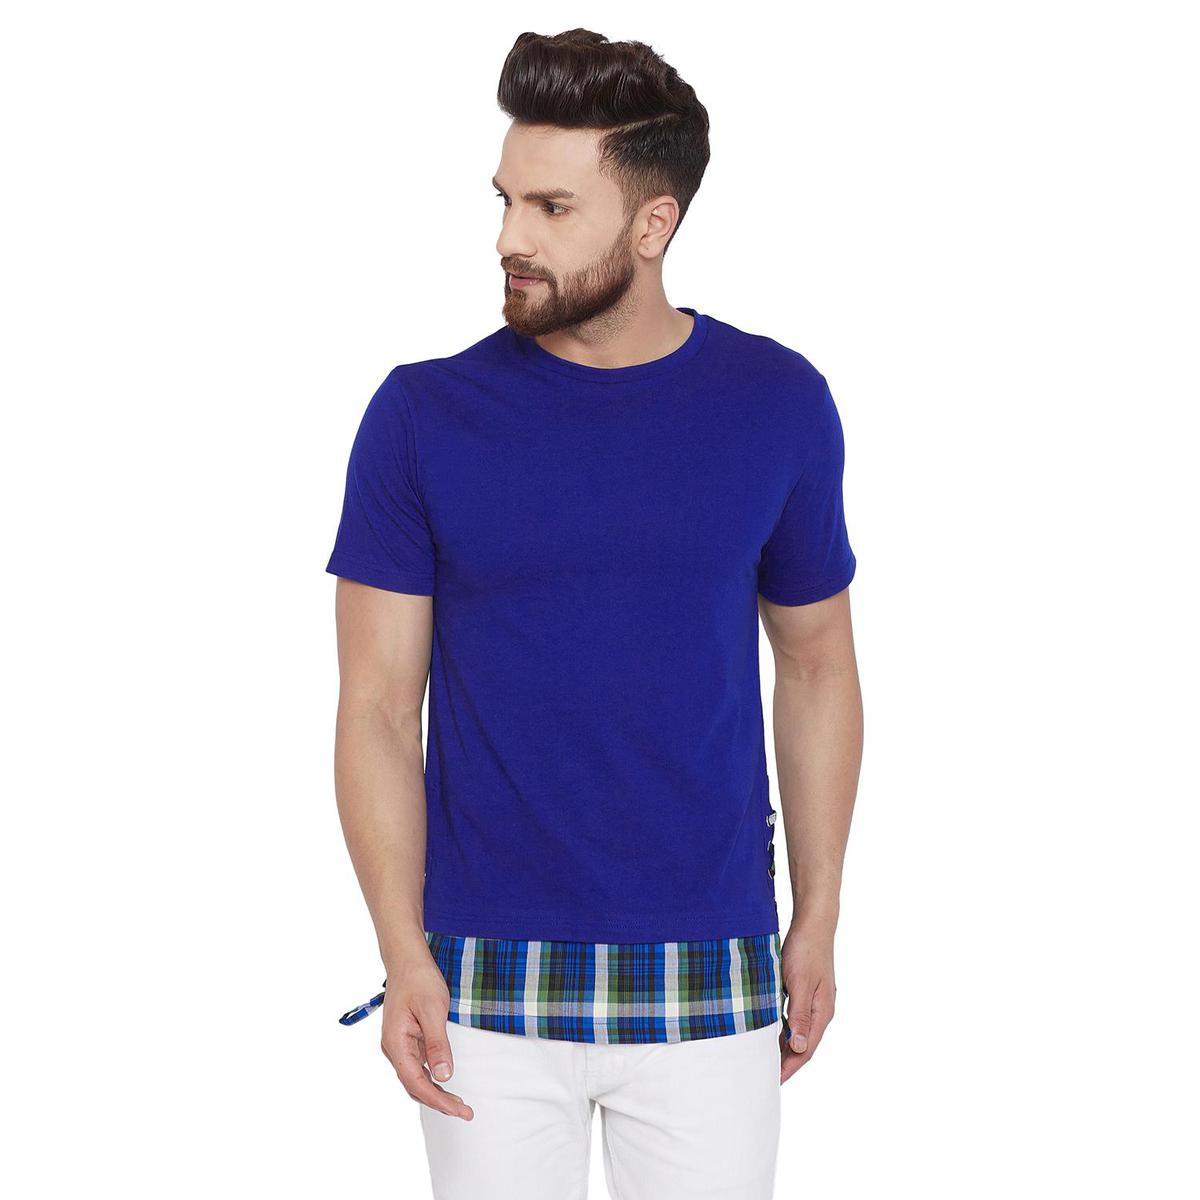 Chill Winston Appealing Blue Colored Casual Wear Cotton Blend Longline T-Shirt With Contrast Hem